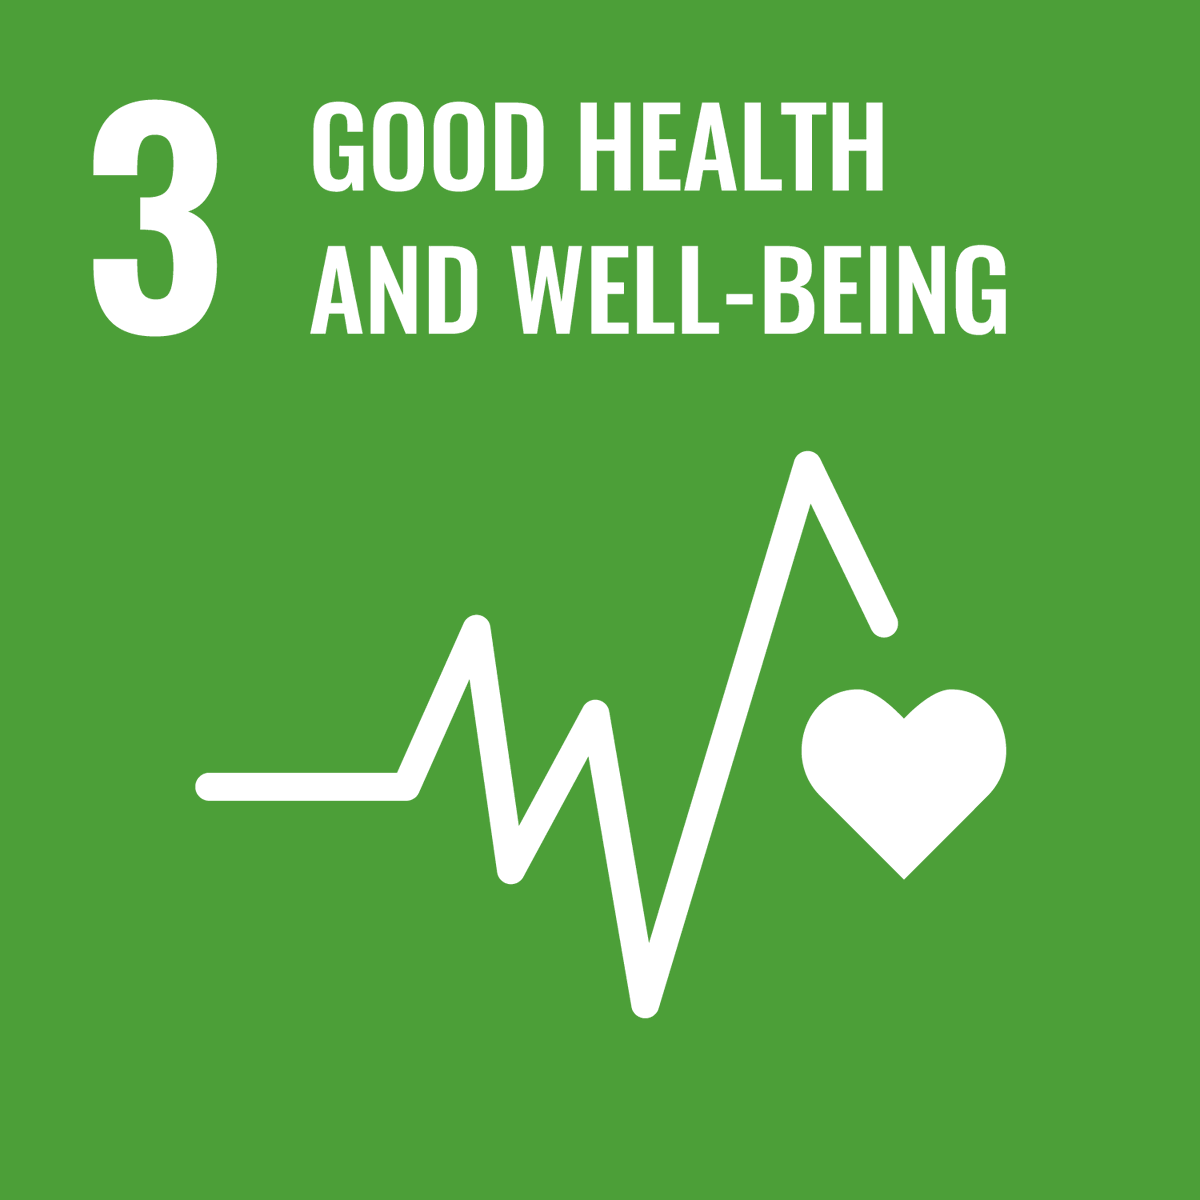 #Isolation was raised at this morning's #SDG workshop. This months #SDGChallenge is about #PositiveAddictions. Things that improve your wellbeing. Remember to find joy in helping others too. Inclusion & community is an important positive to be addicted to. https://t.co/aacaURT2p0 https://t.co/FGWKjokteY https://t.co/FObv7kP29t